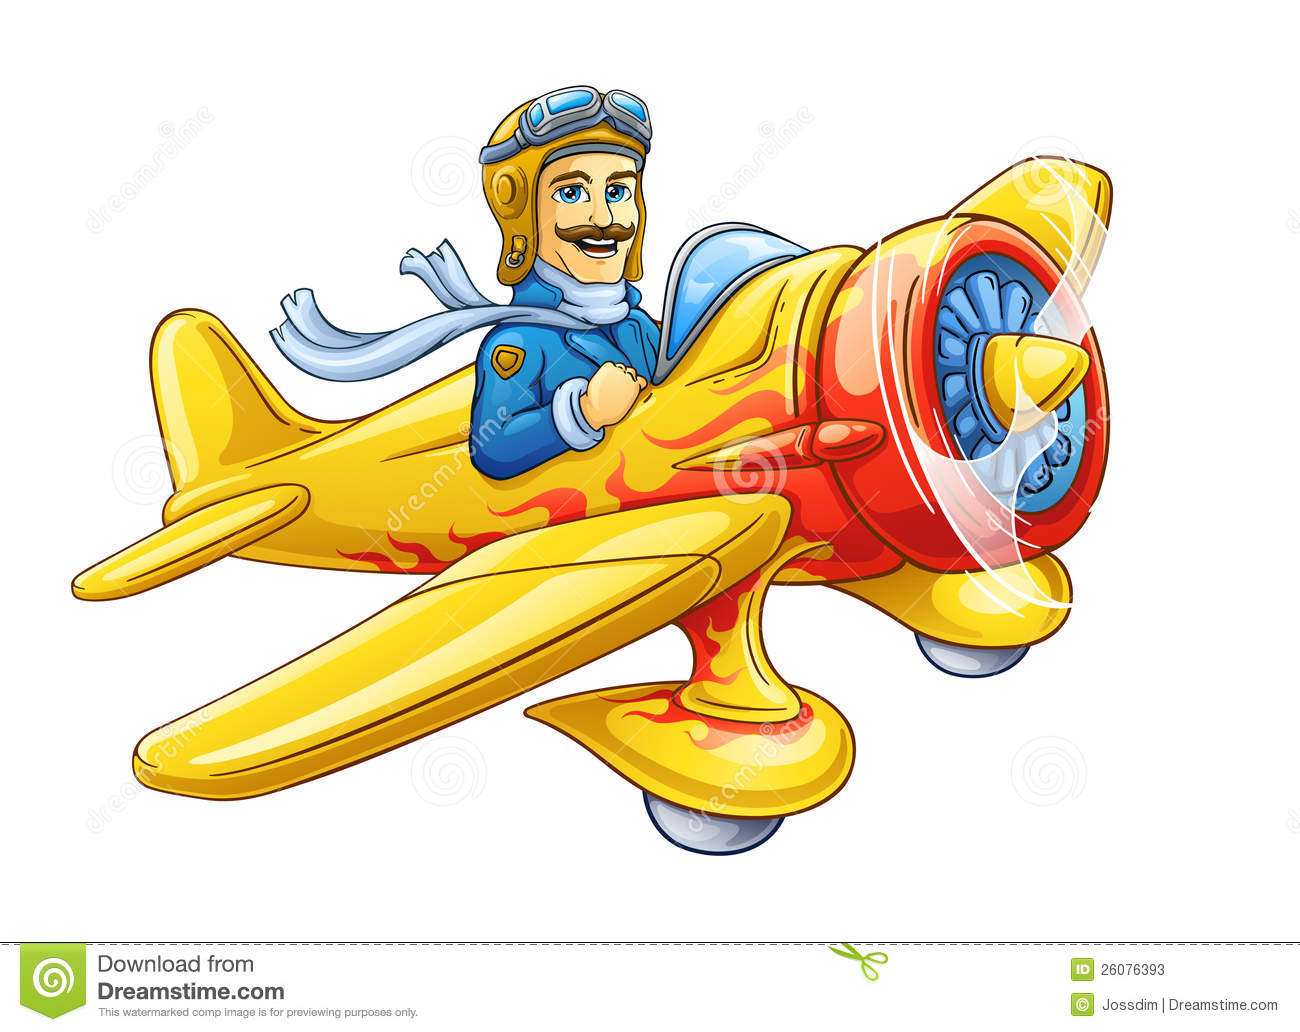 cartoon airplane vector with Stock Photos Cartoon Plane Pilot Image26076393 on Airplane With Banner Clipart furthermore Big together with Airplane Pilot 8487336 additionally Stock Photos Airplane Plane Airplane Symbol Stylized Airplane Vector Flying Vector Design Image31029273 also Airplane Outline.